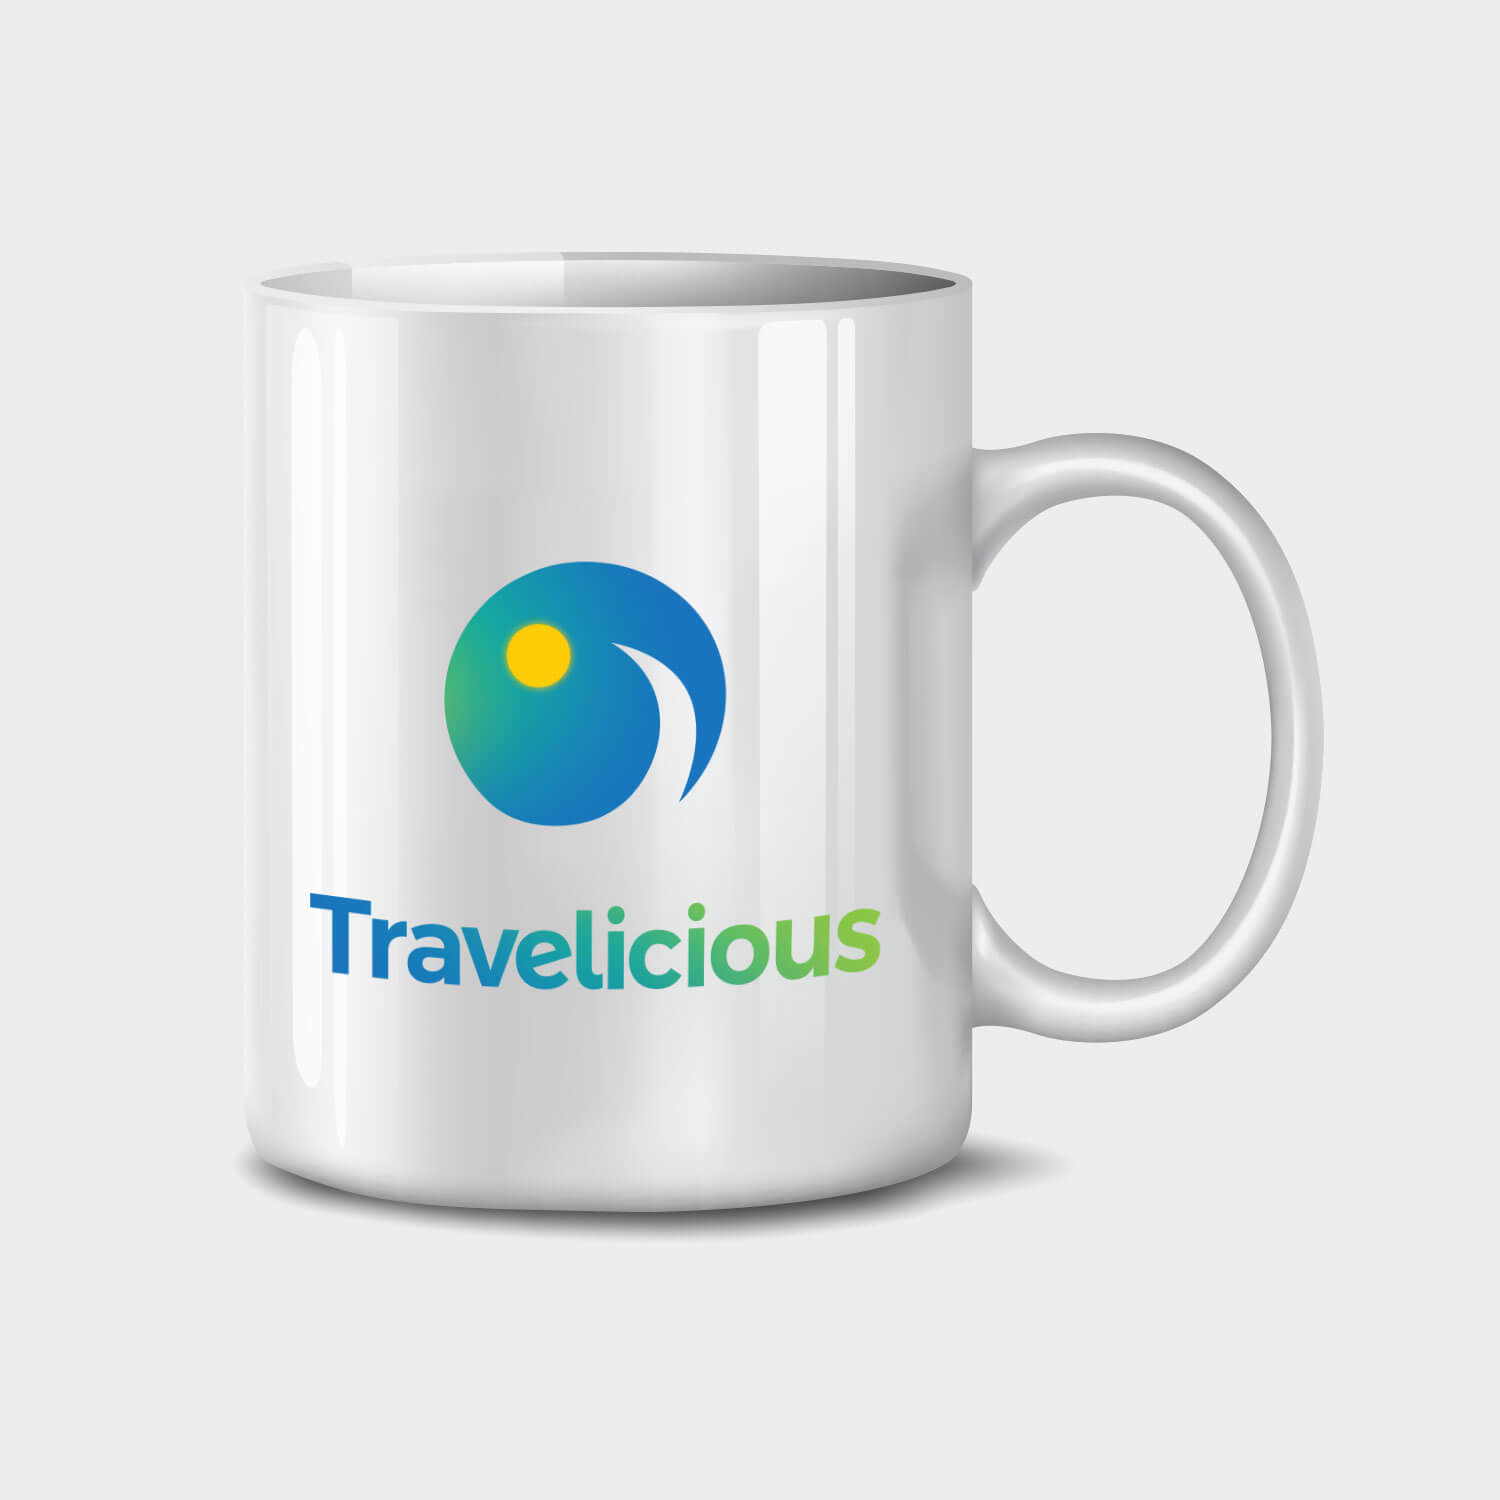 http://travelicious.bold-themes.com/main-demo/wp-content/uploads/sites/2/2018/09/mug-02.jpg